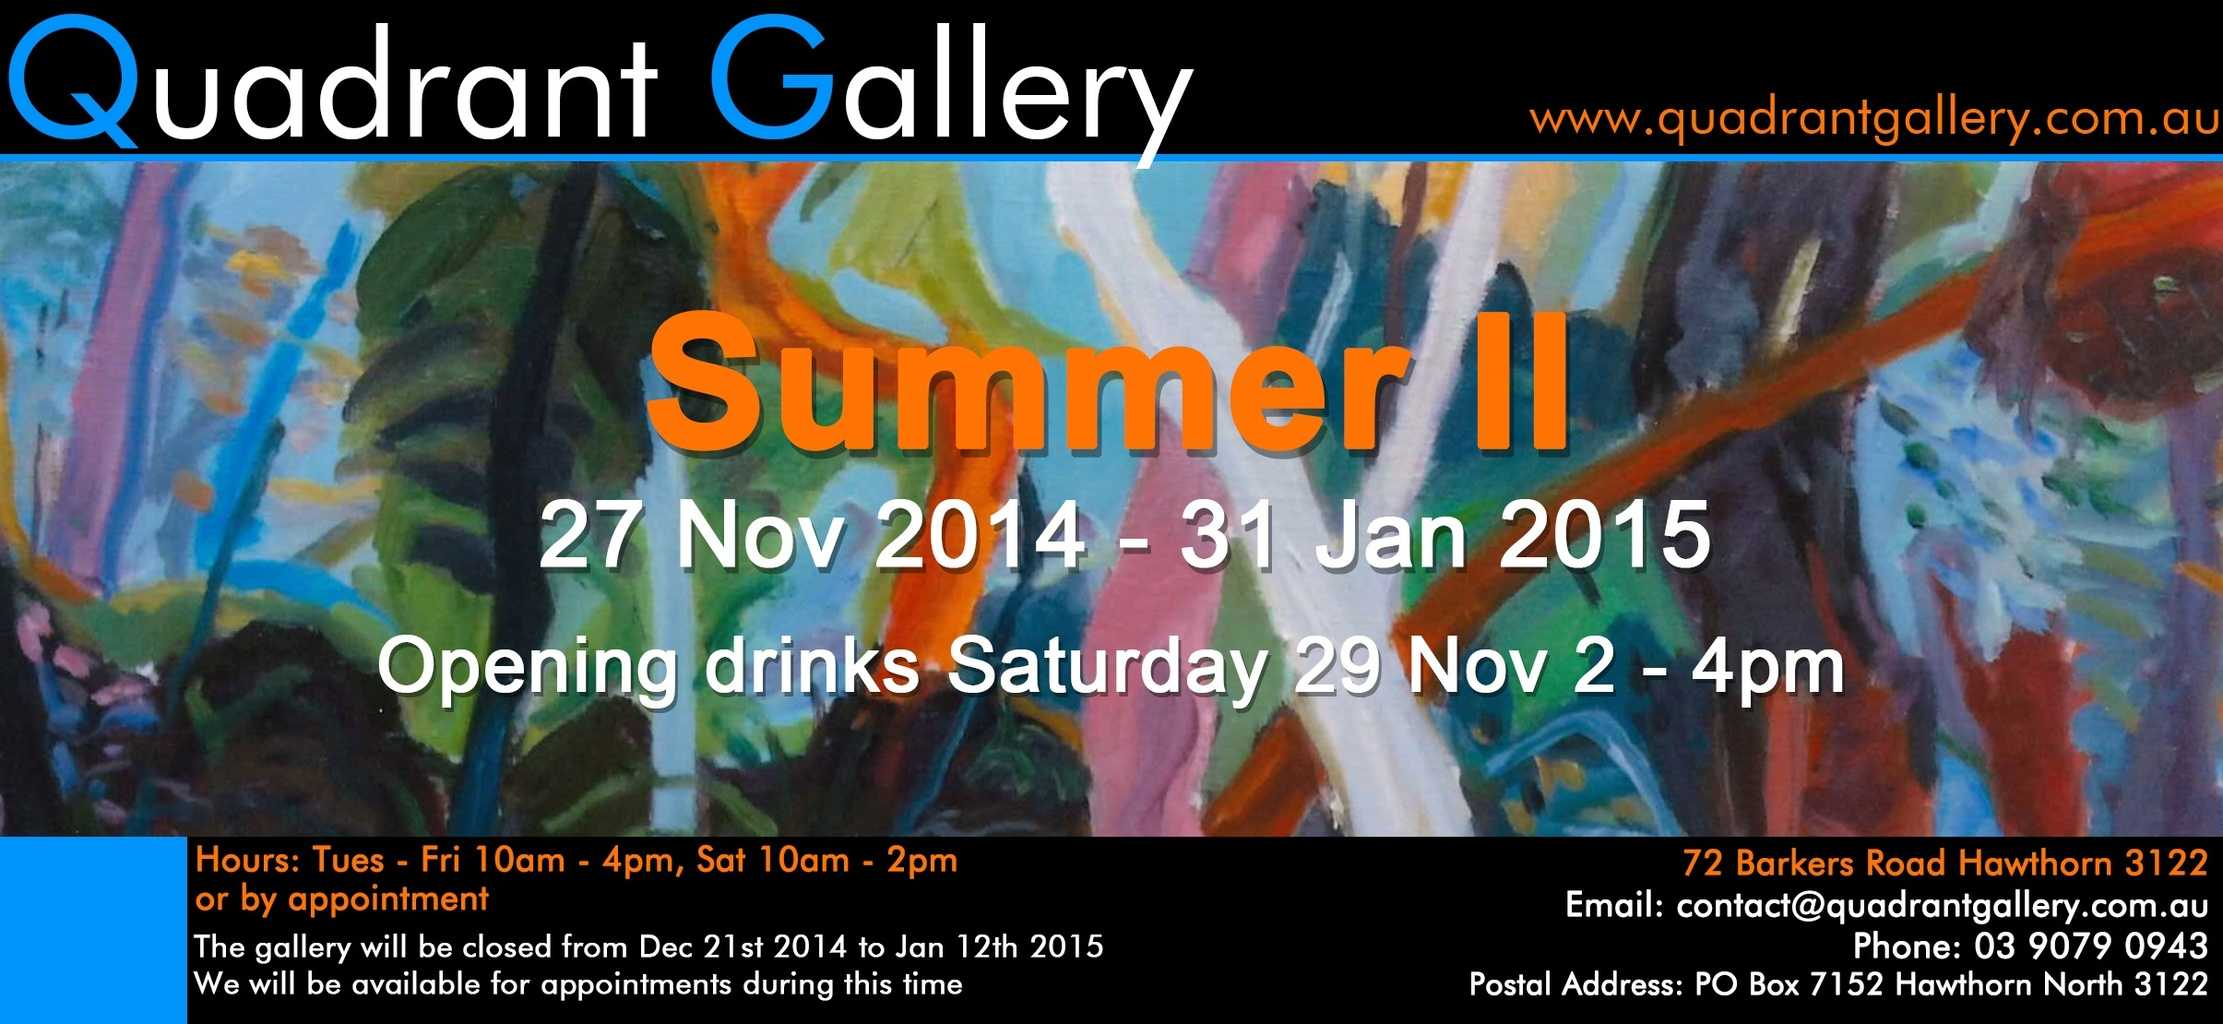 An opportunity to exhibit my knew work in another group show